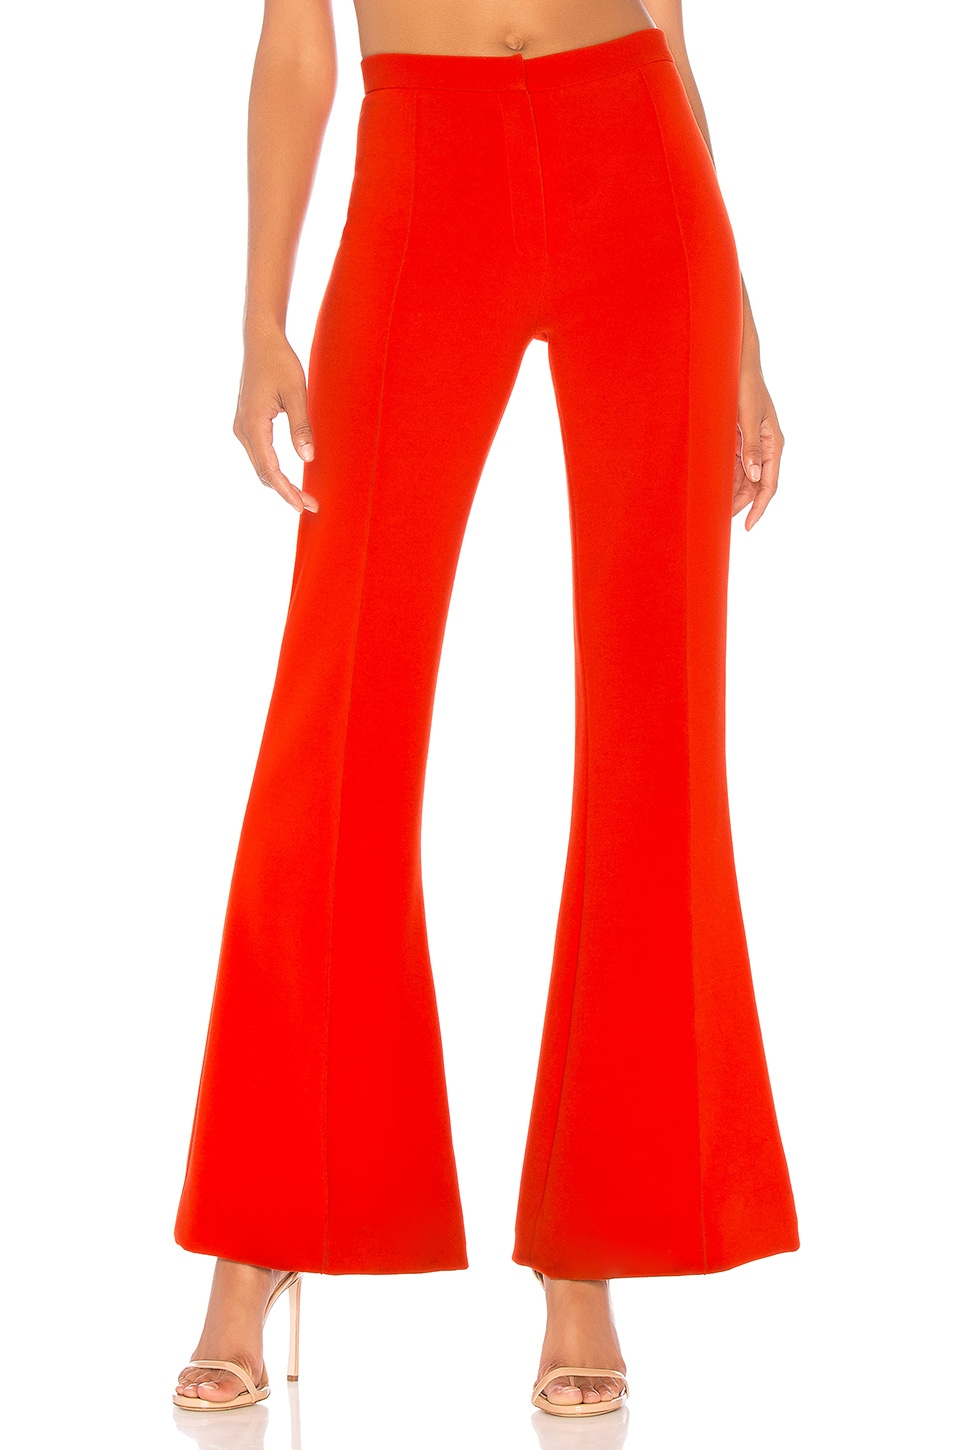 OUD Espi 2 Pant in Red